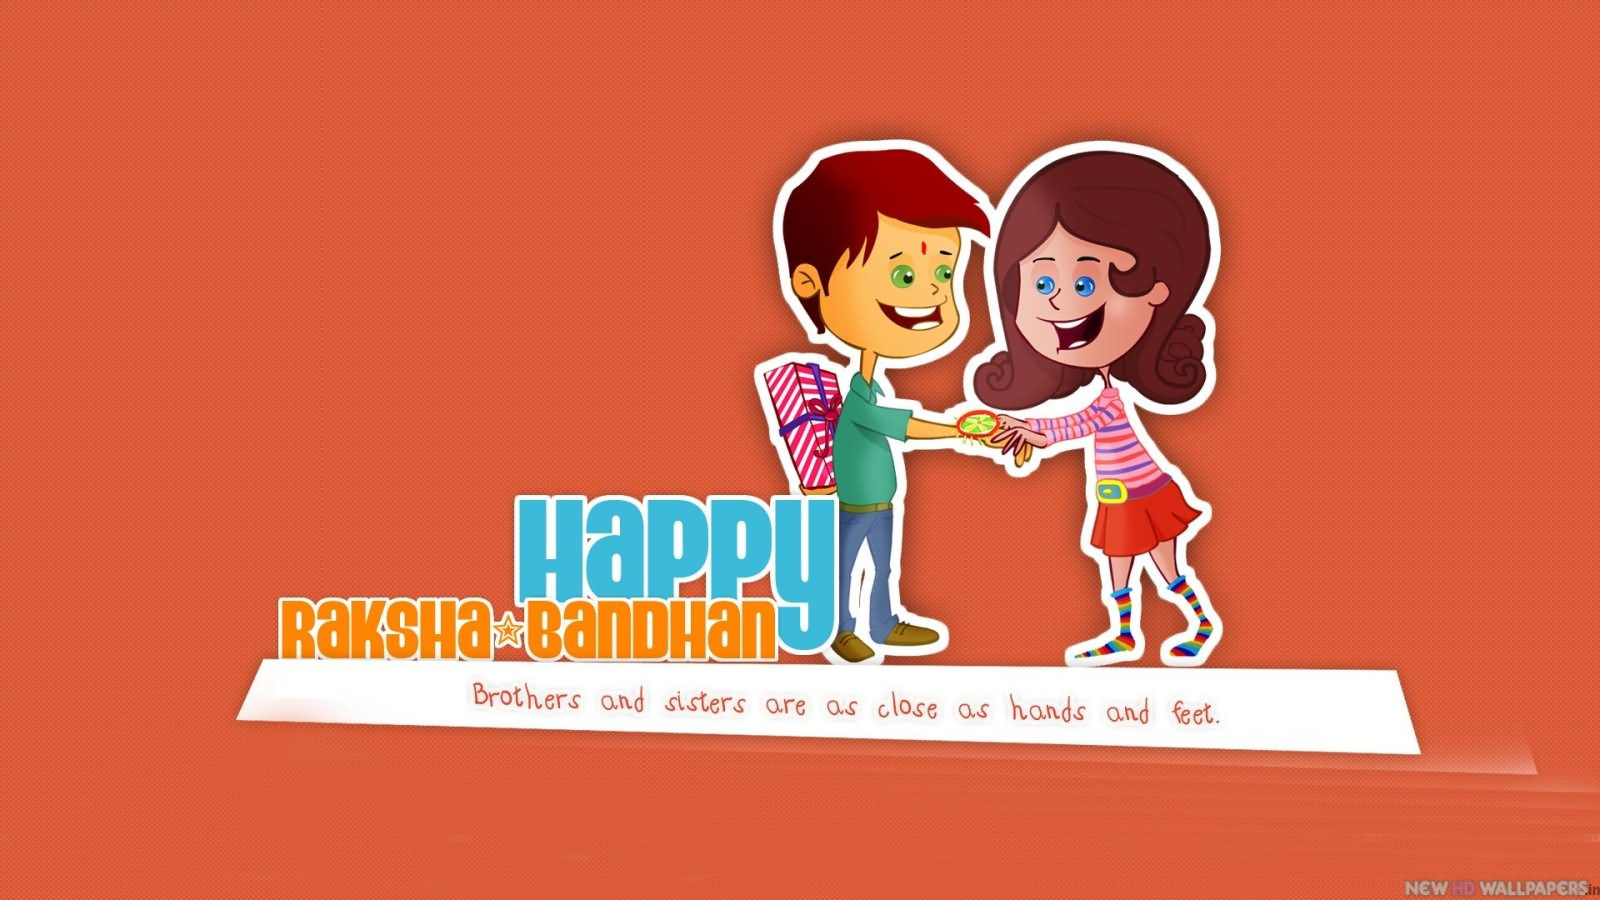 incredible raksha bandhan greeting pictures happy raksha bandhan brothers and sisters are as close as hand and feet